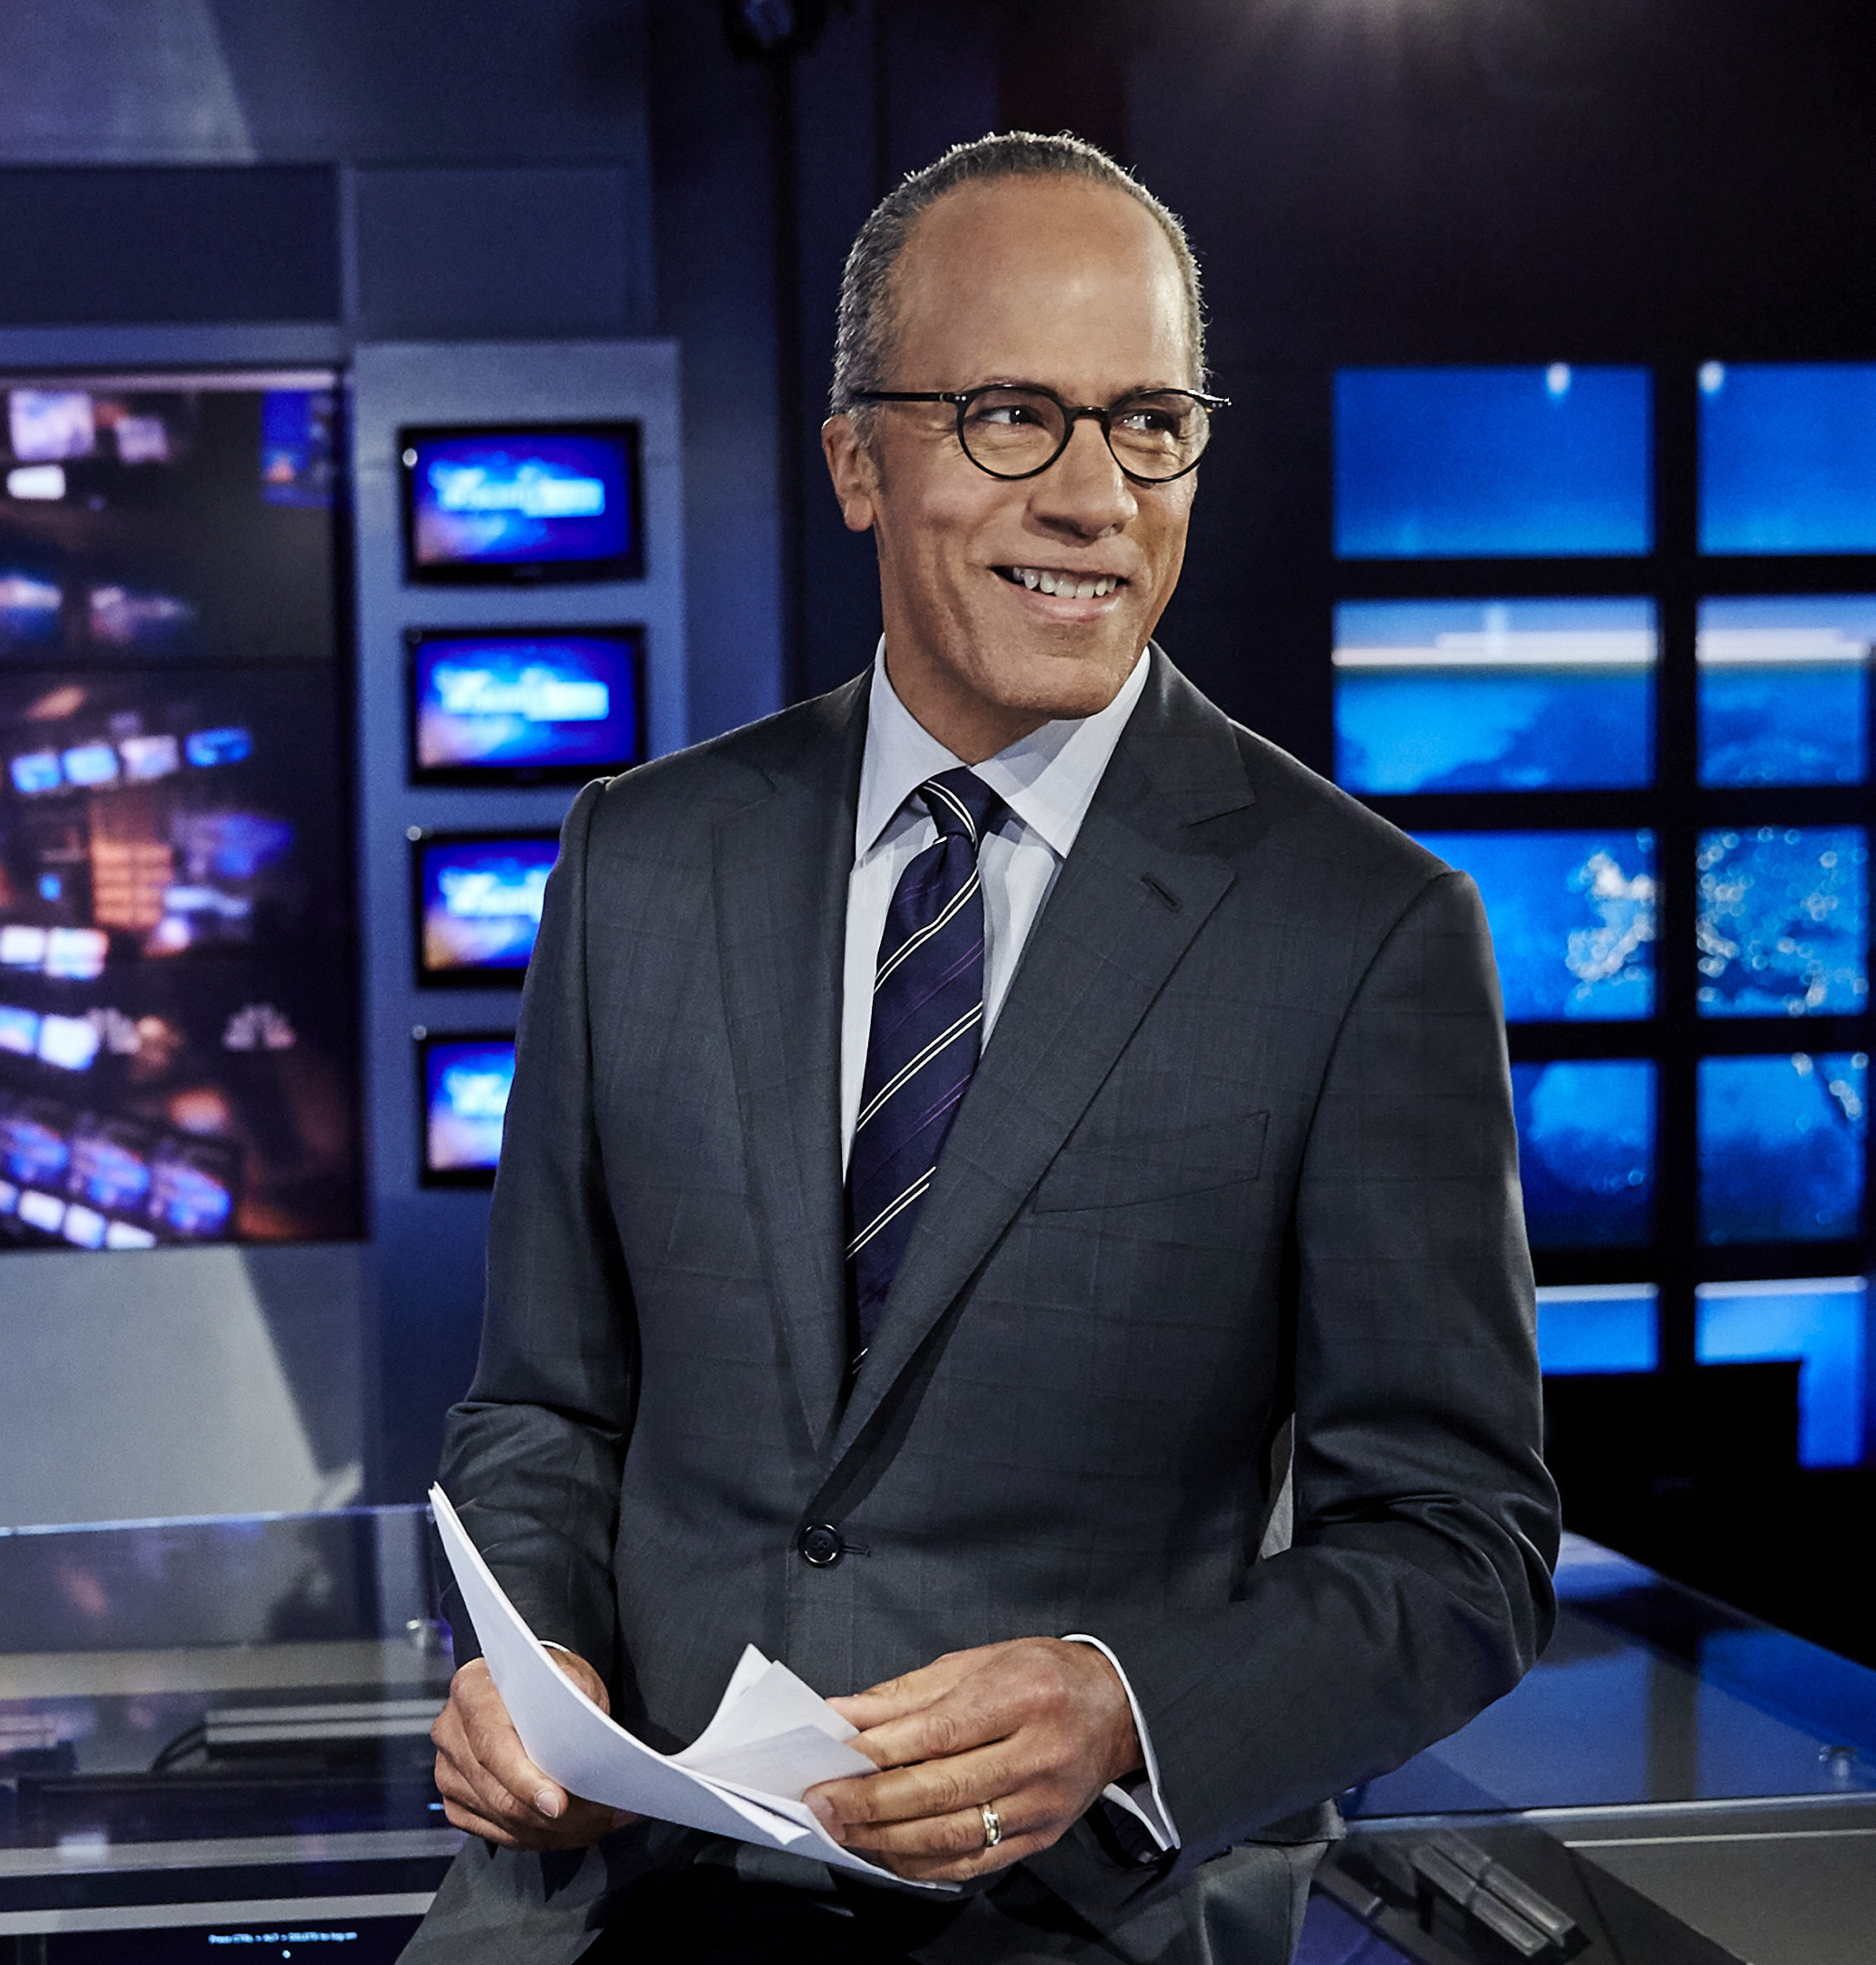 Lester Holt to be honored by Montclair State University School of Communication and Media on Friday, December 2. Photo courtesy of NBC News.